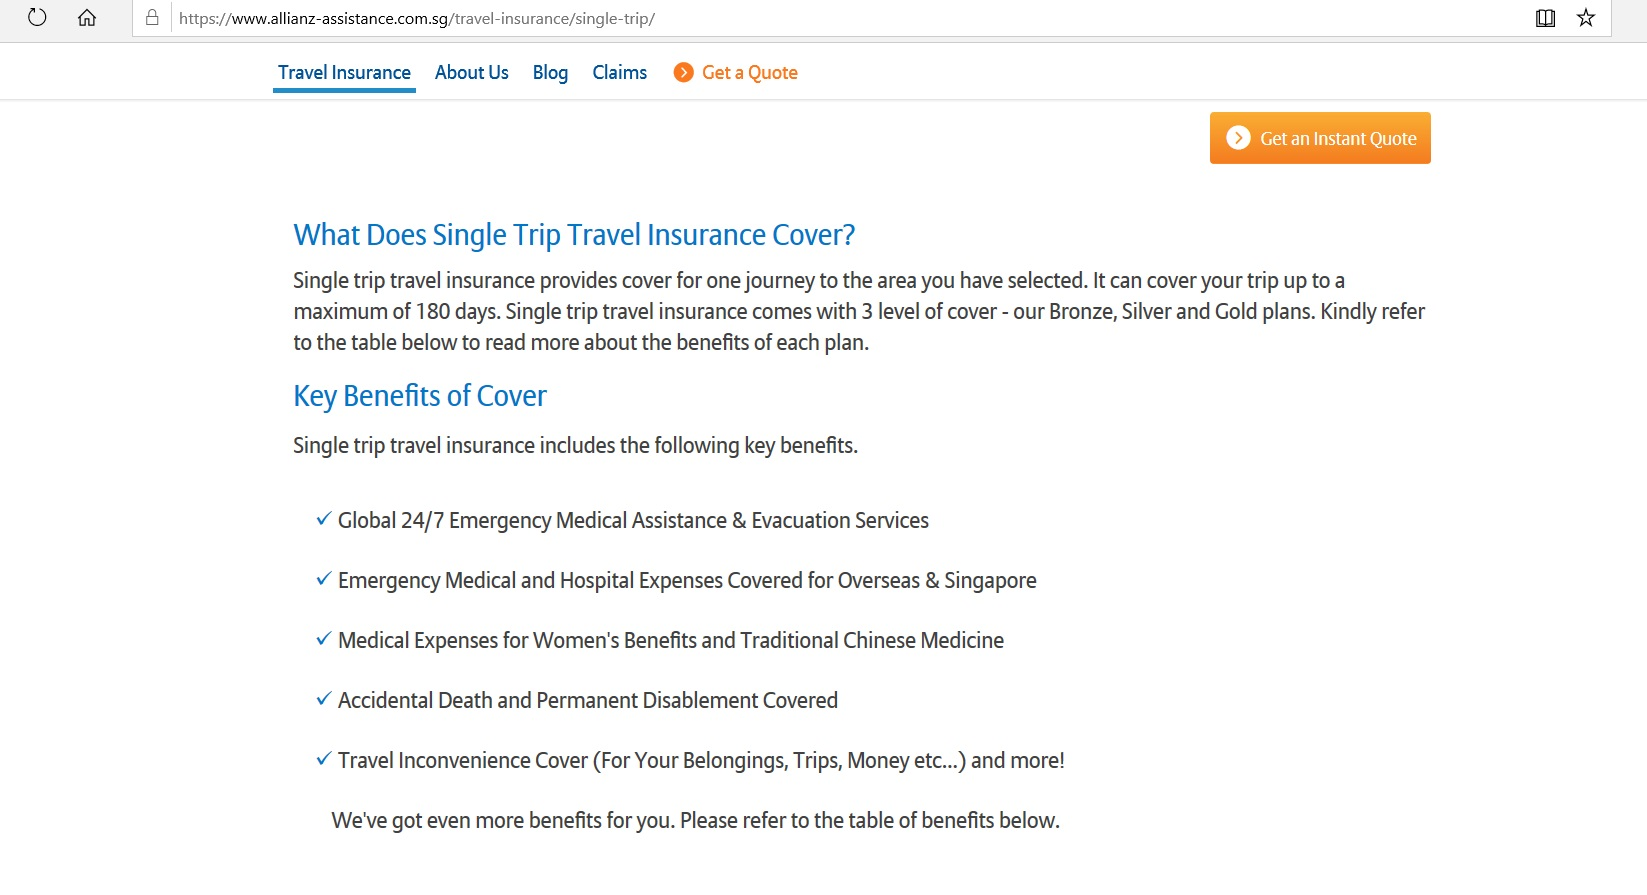 Details on the benefits of a Single Trip Travel Insurance Cover.